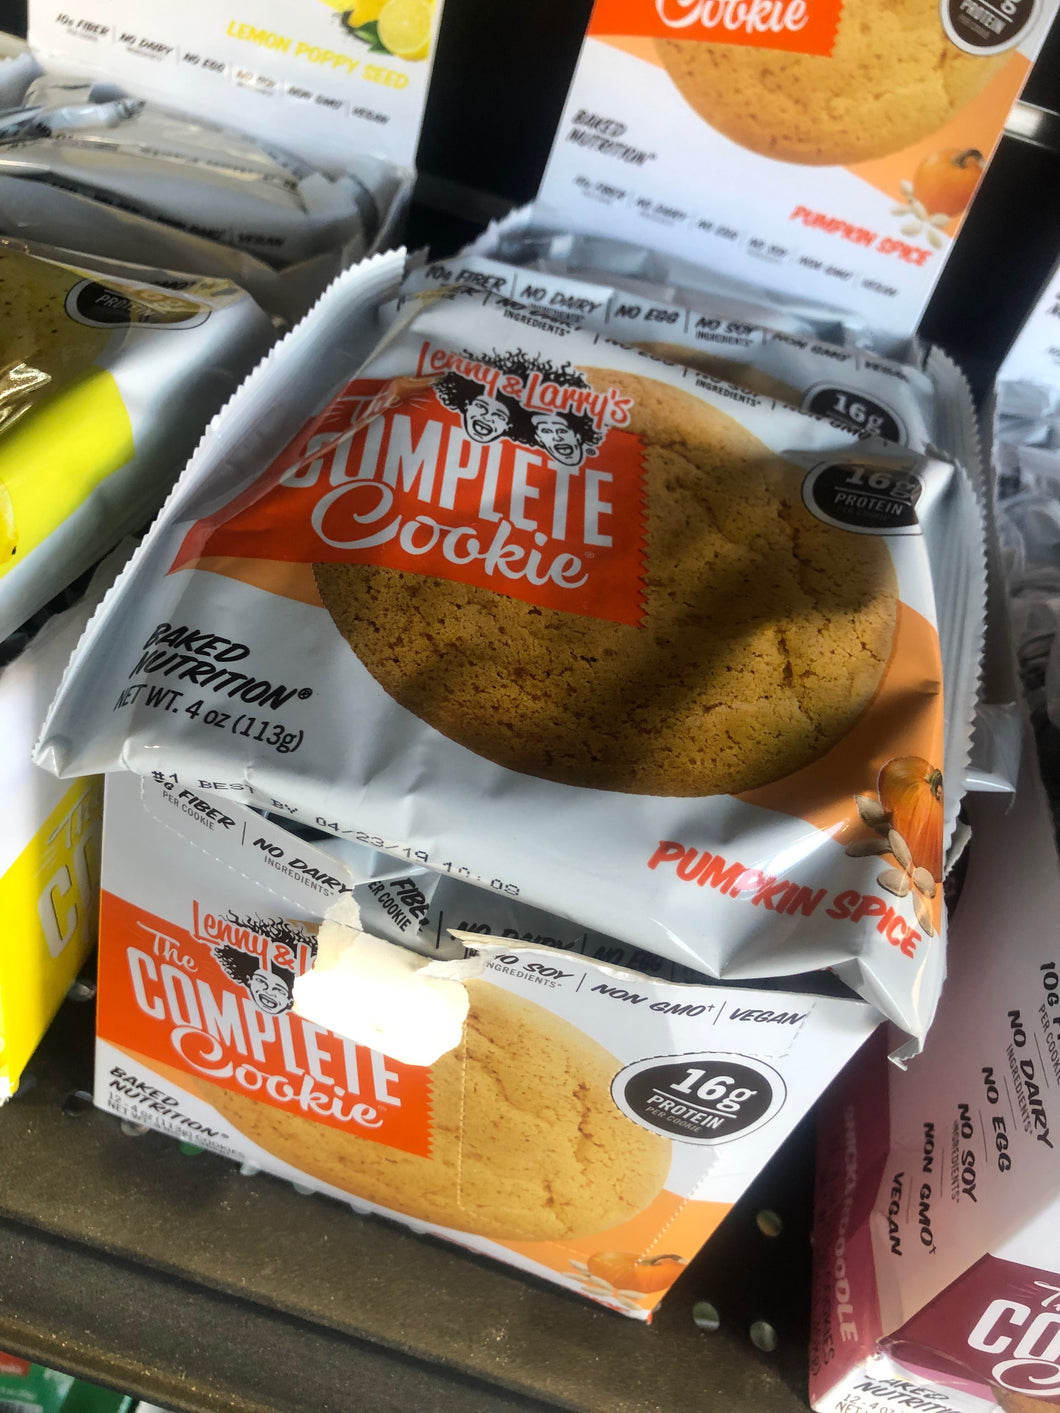 The Complete Cookie Pumpkin Spice